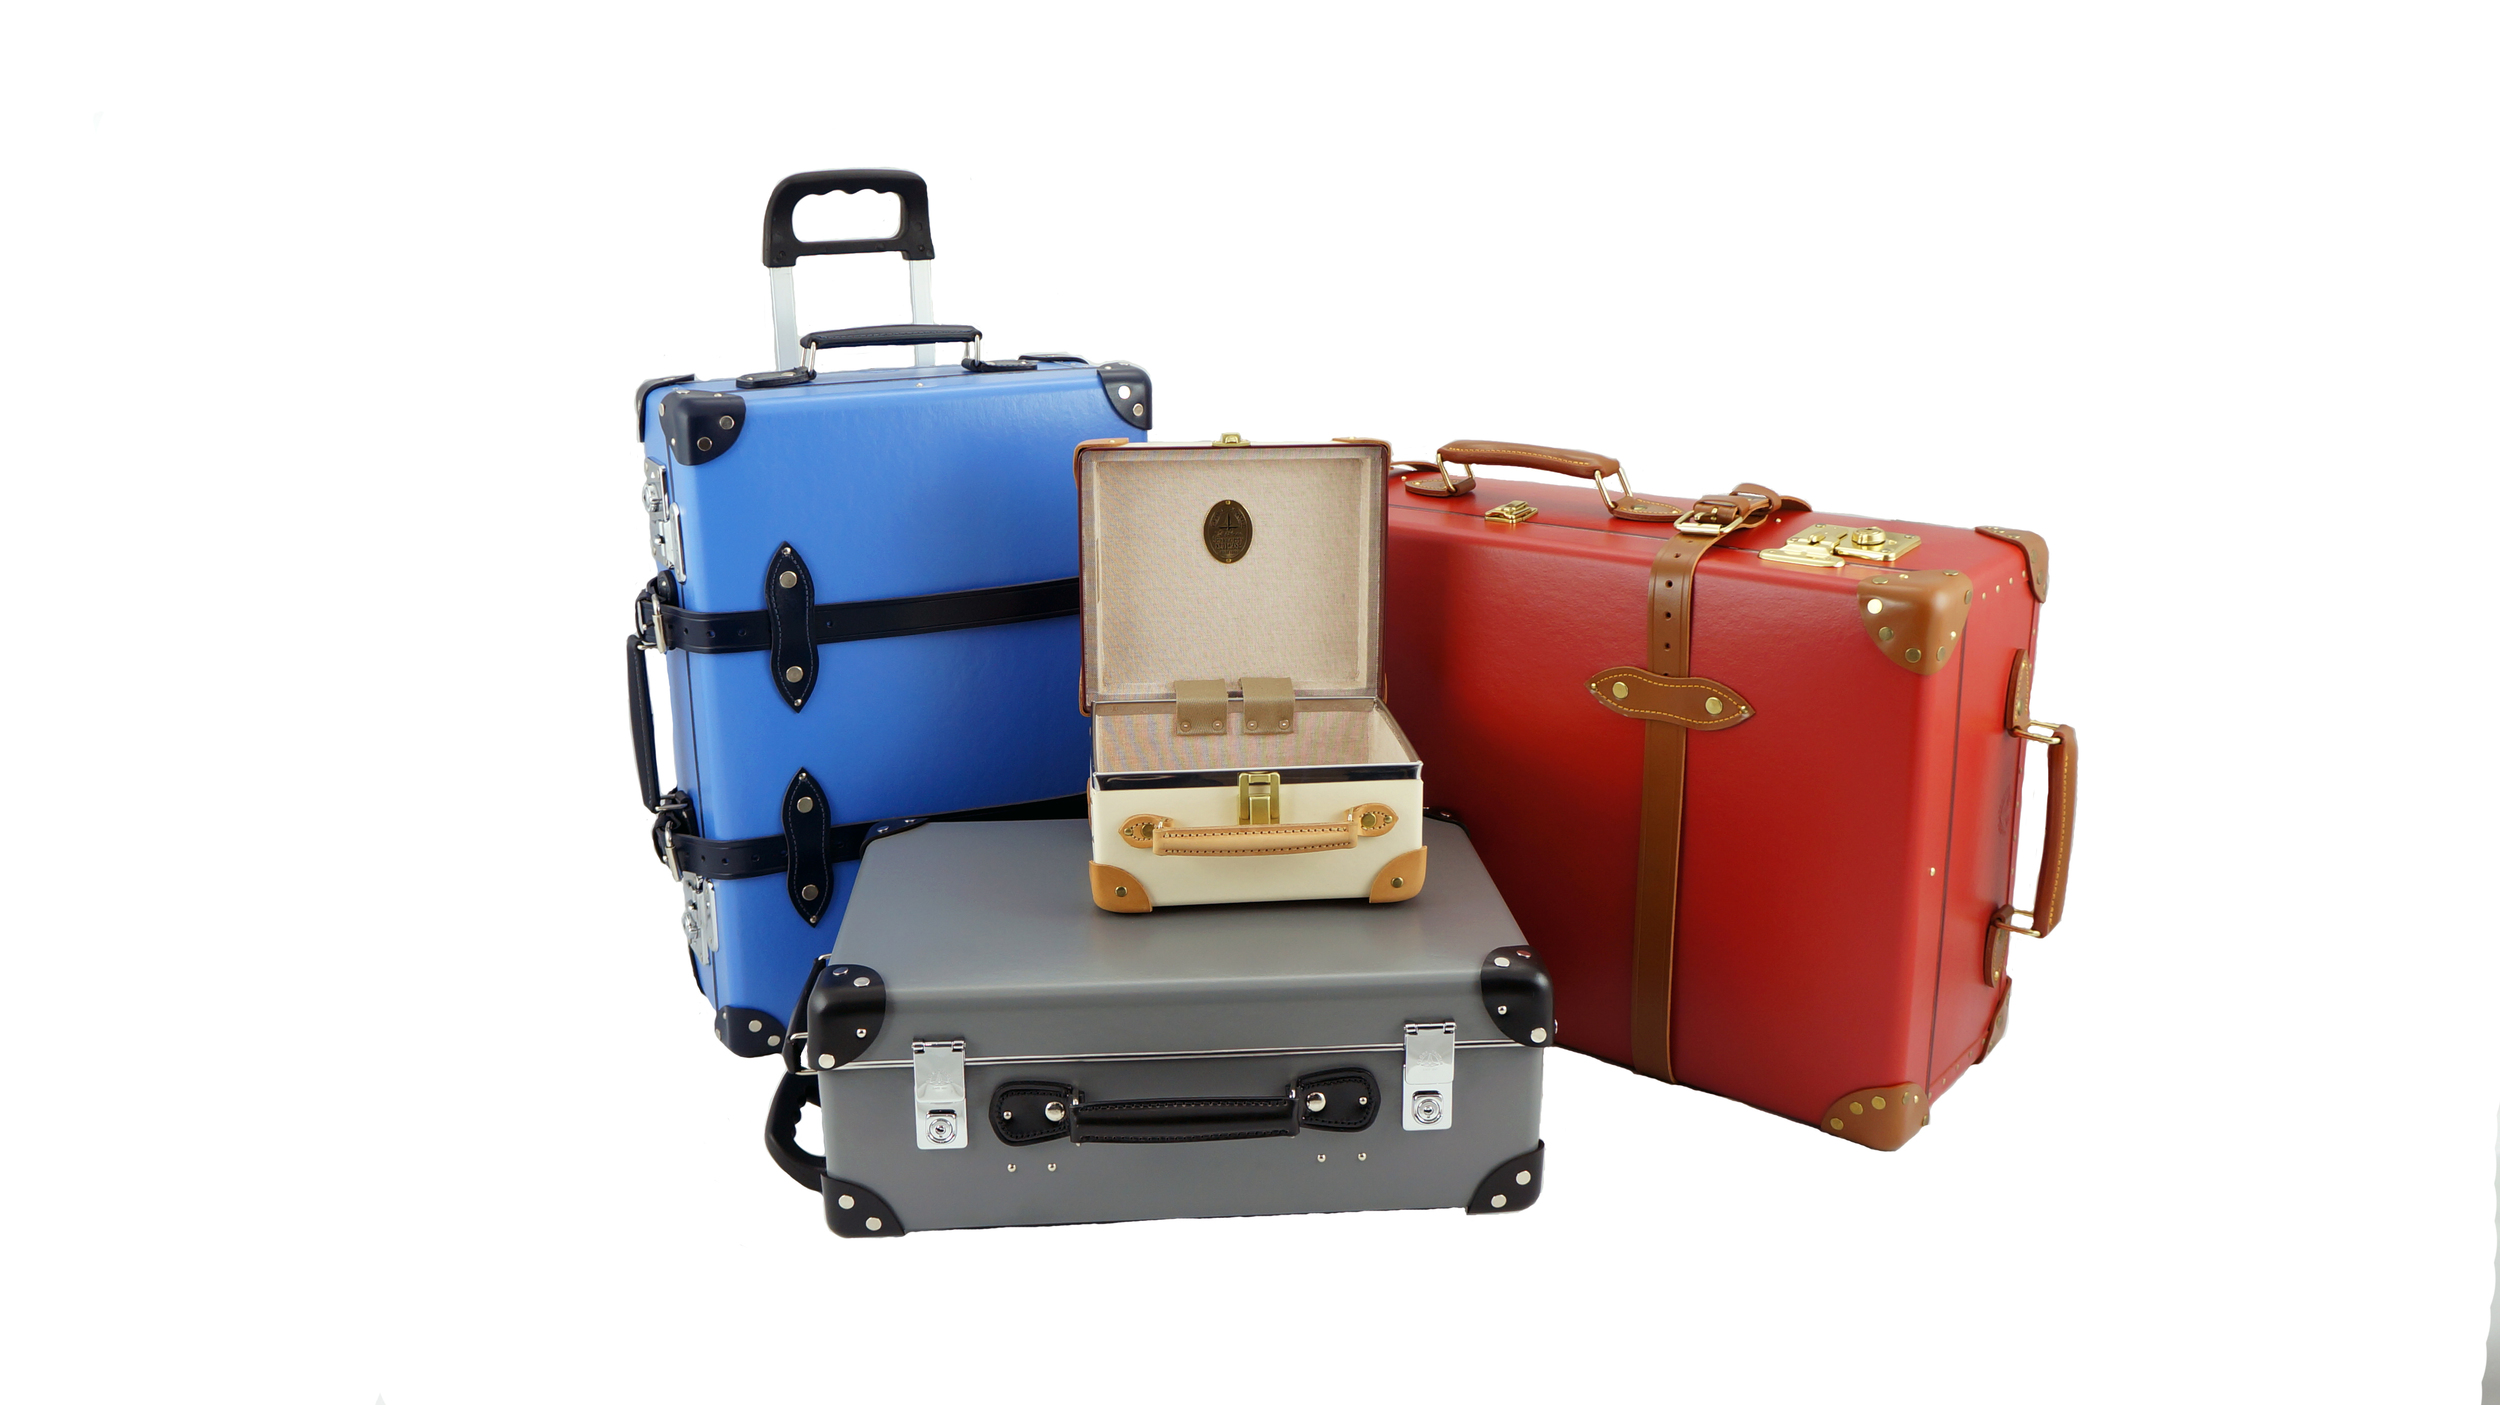 Globe-Trotter luggage collections. A range of colours and sizes. The only luxury luggage designed to be checked-in. From $550